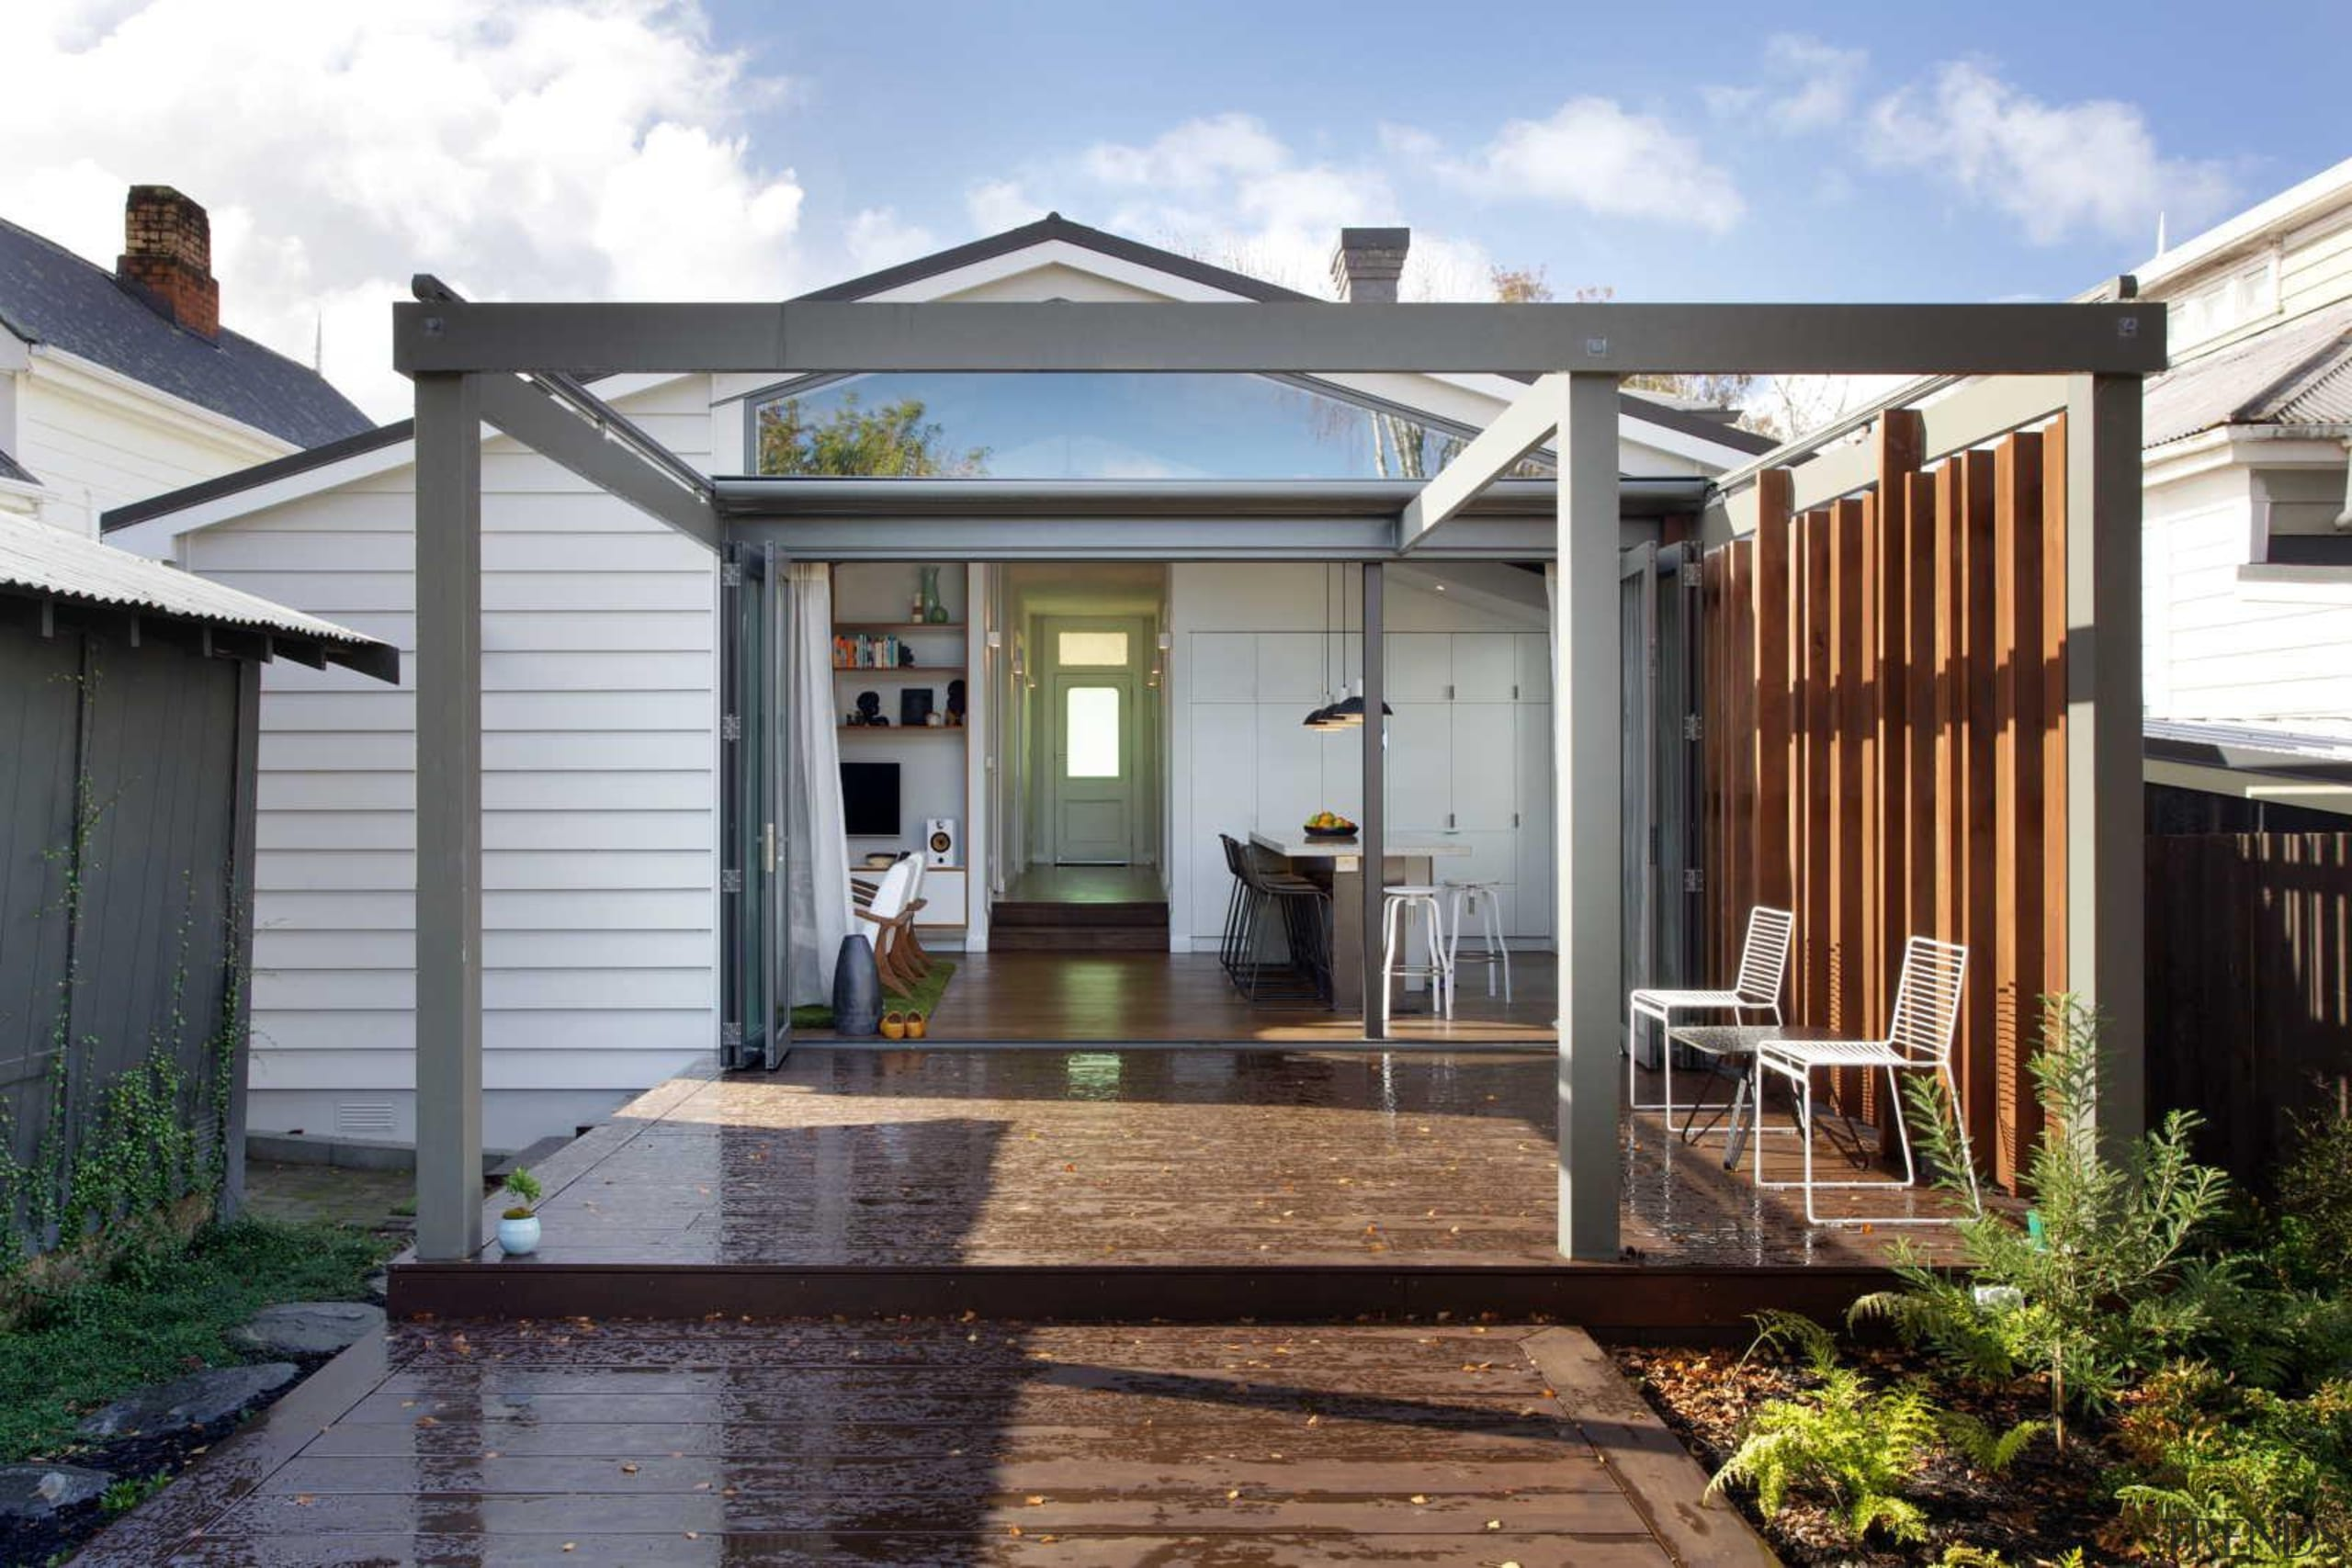 The large timber deck and pergola define the backyard, cottage, deck, estate, facade, home, house, outdoor structure, porch, property, real estate, roof, siding, white